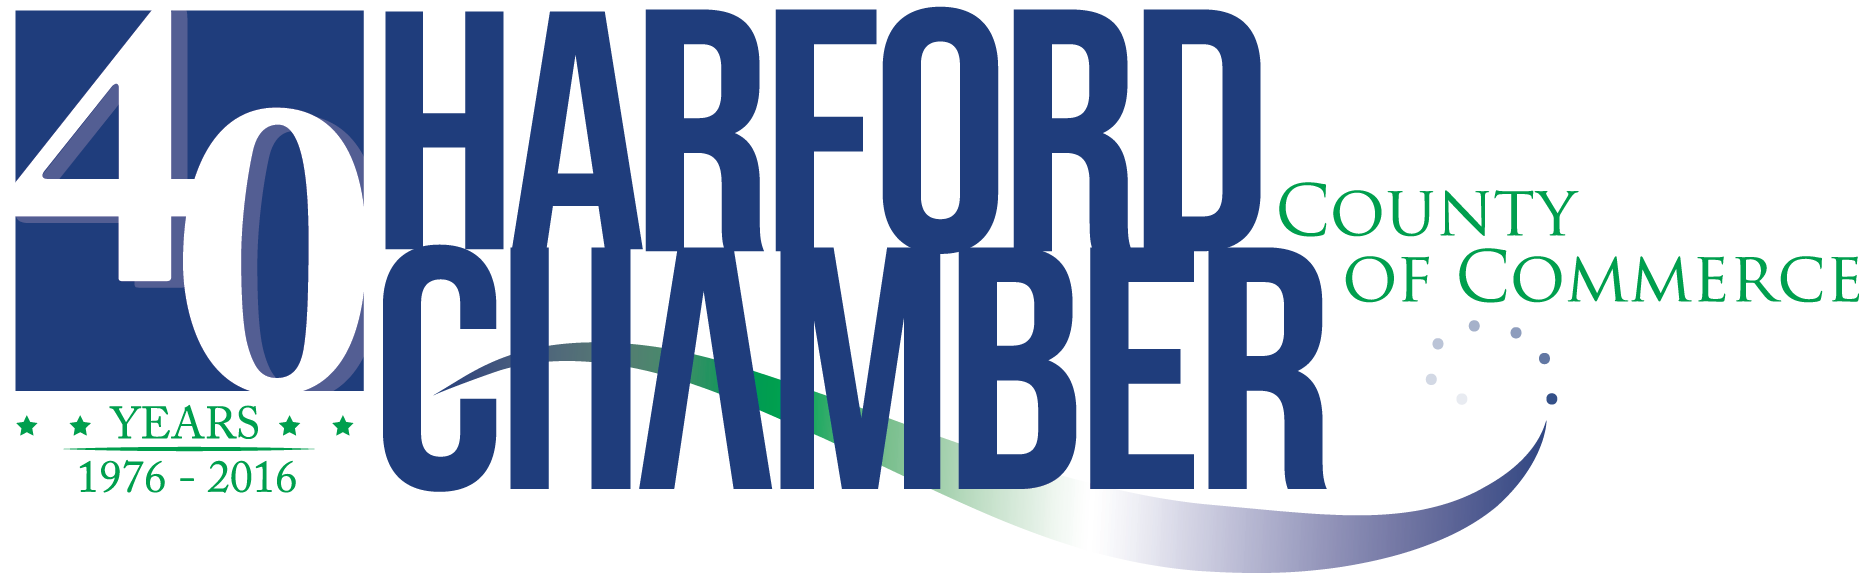 Harford County Chamber of Commerce